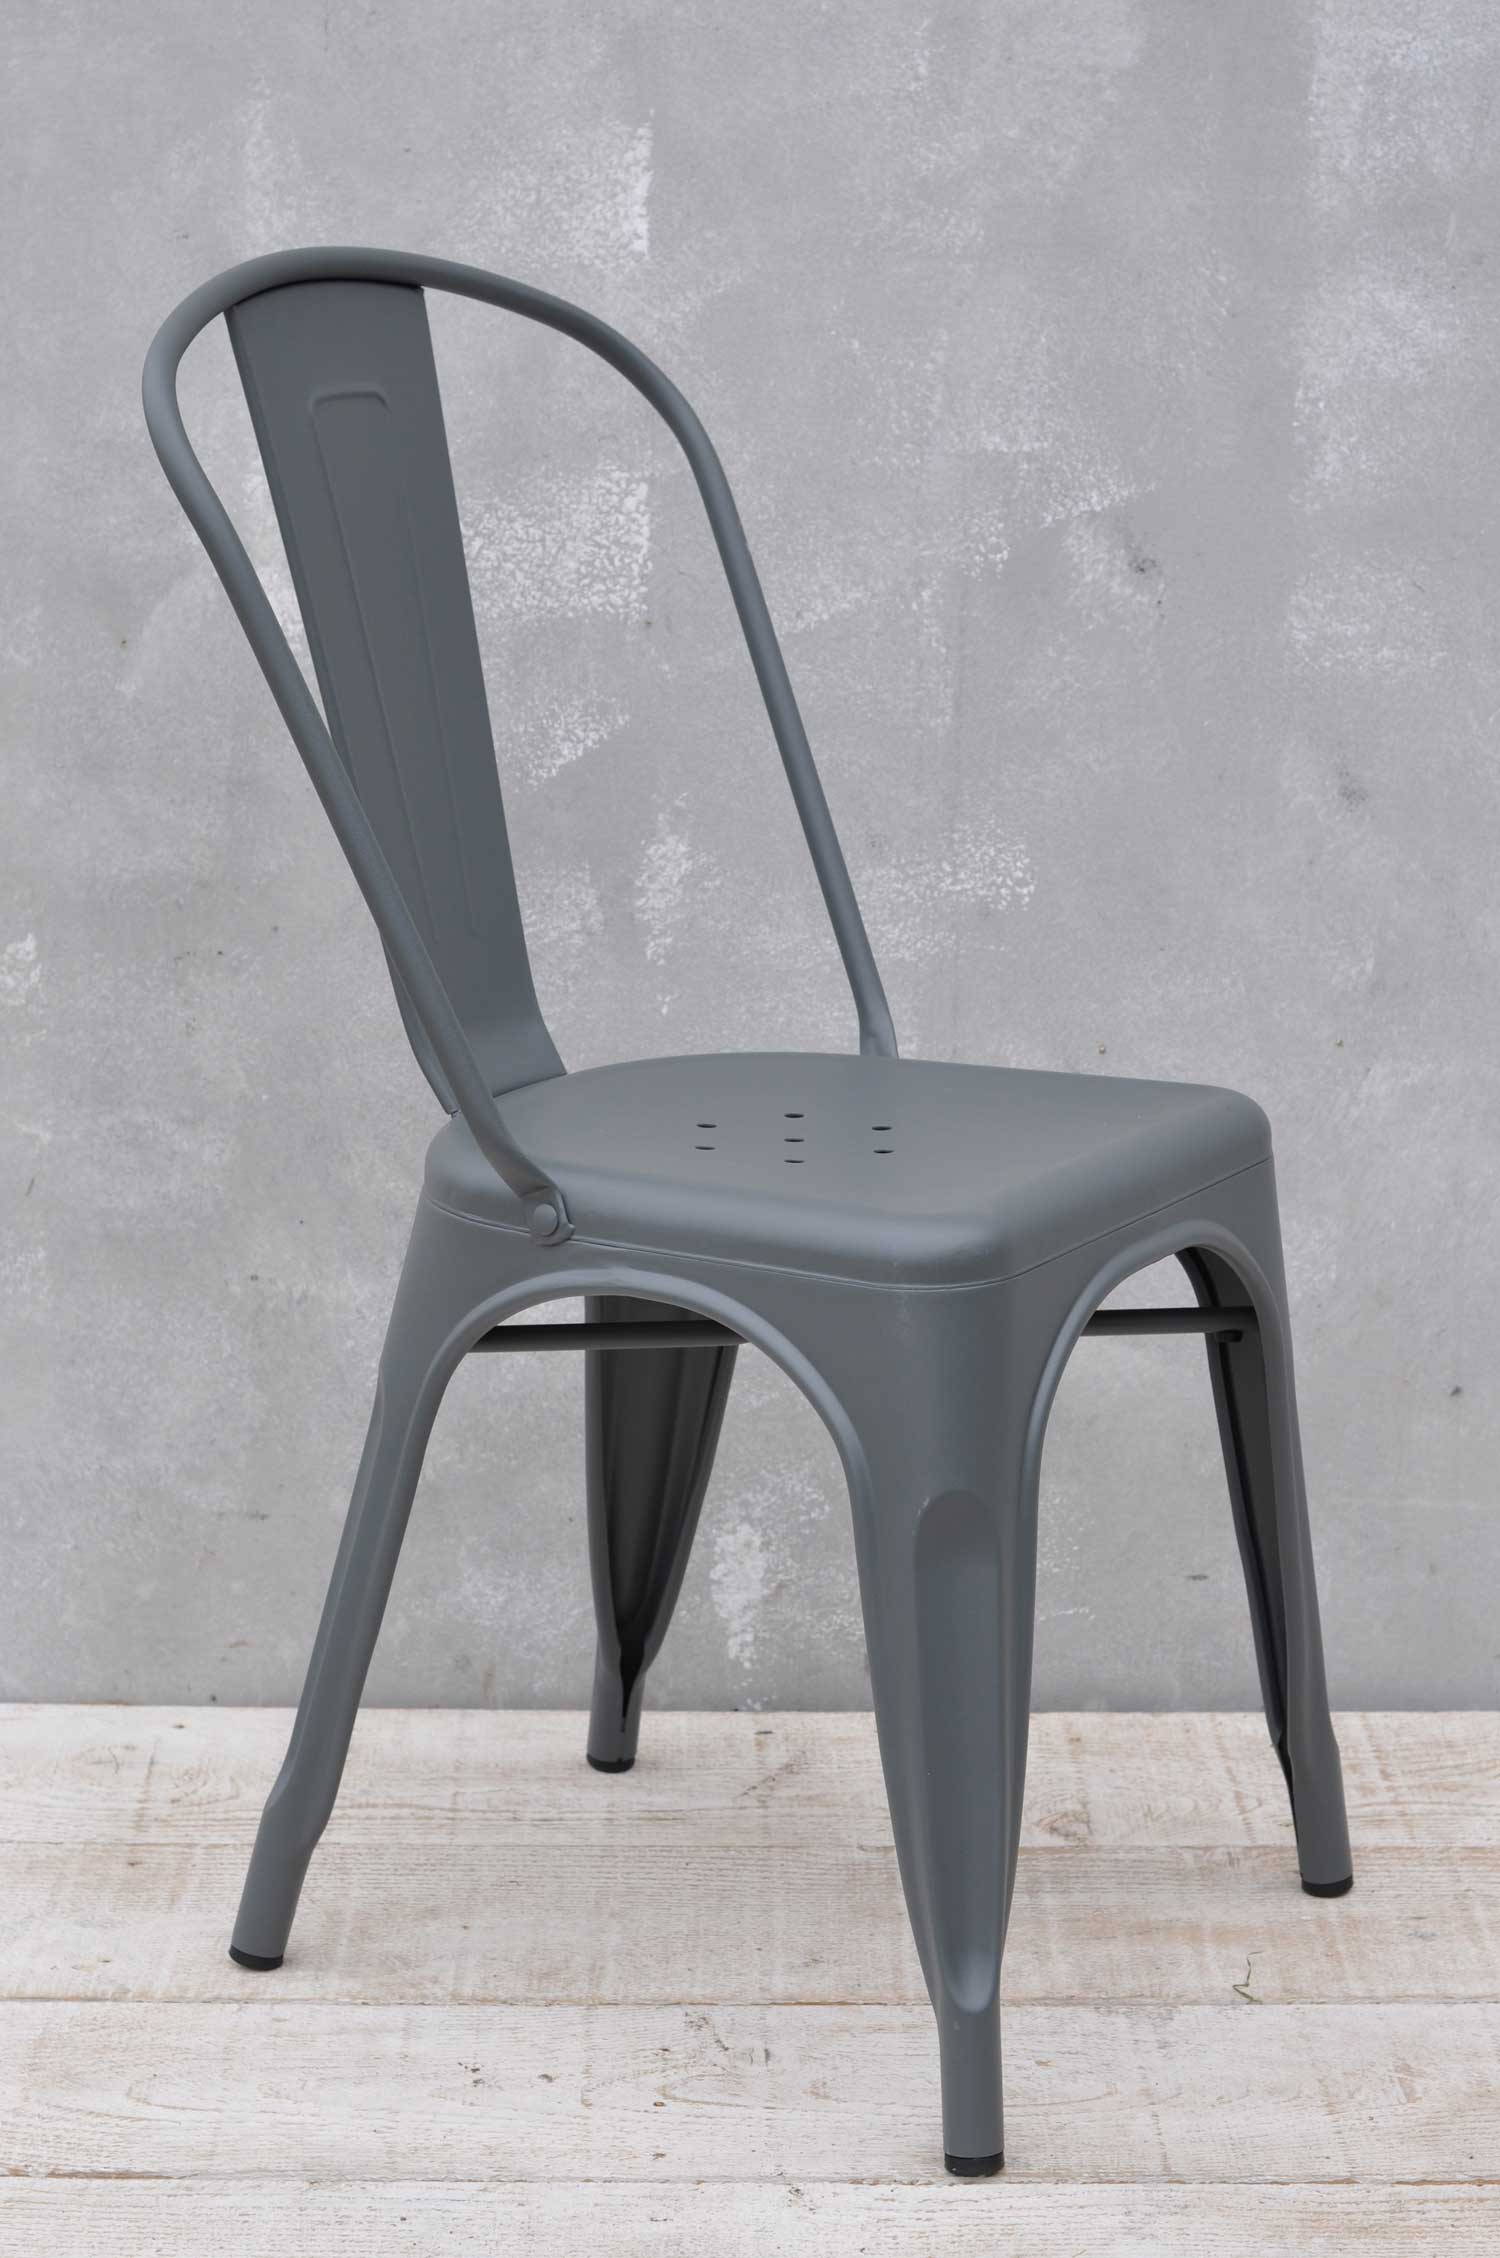 Tolix style metal industrial chair.